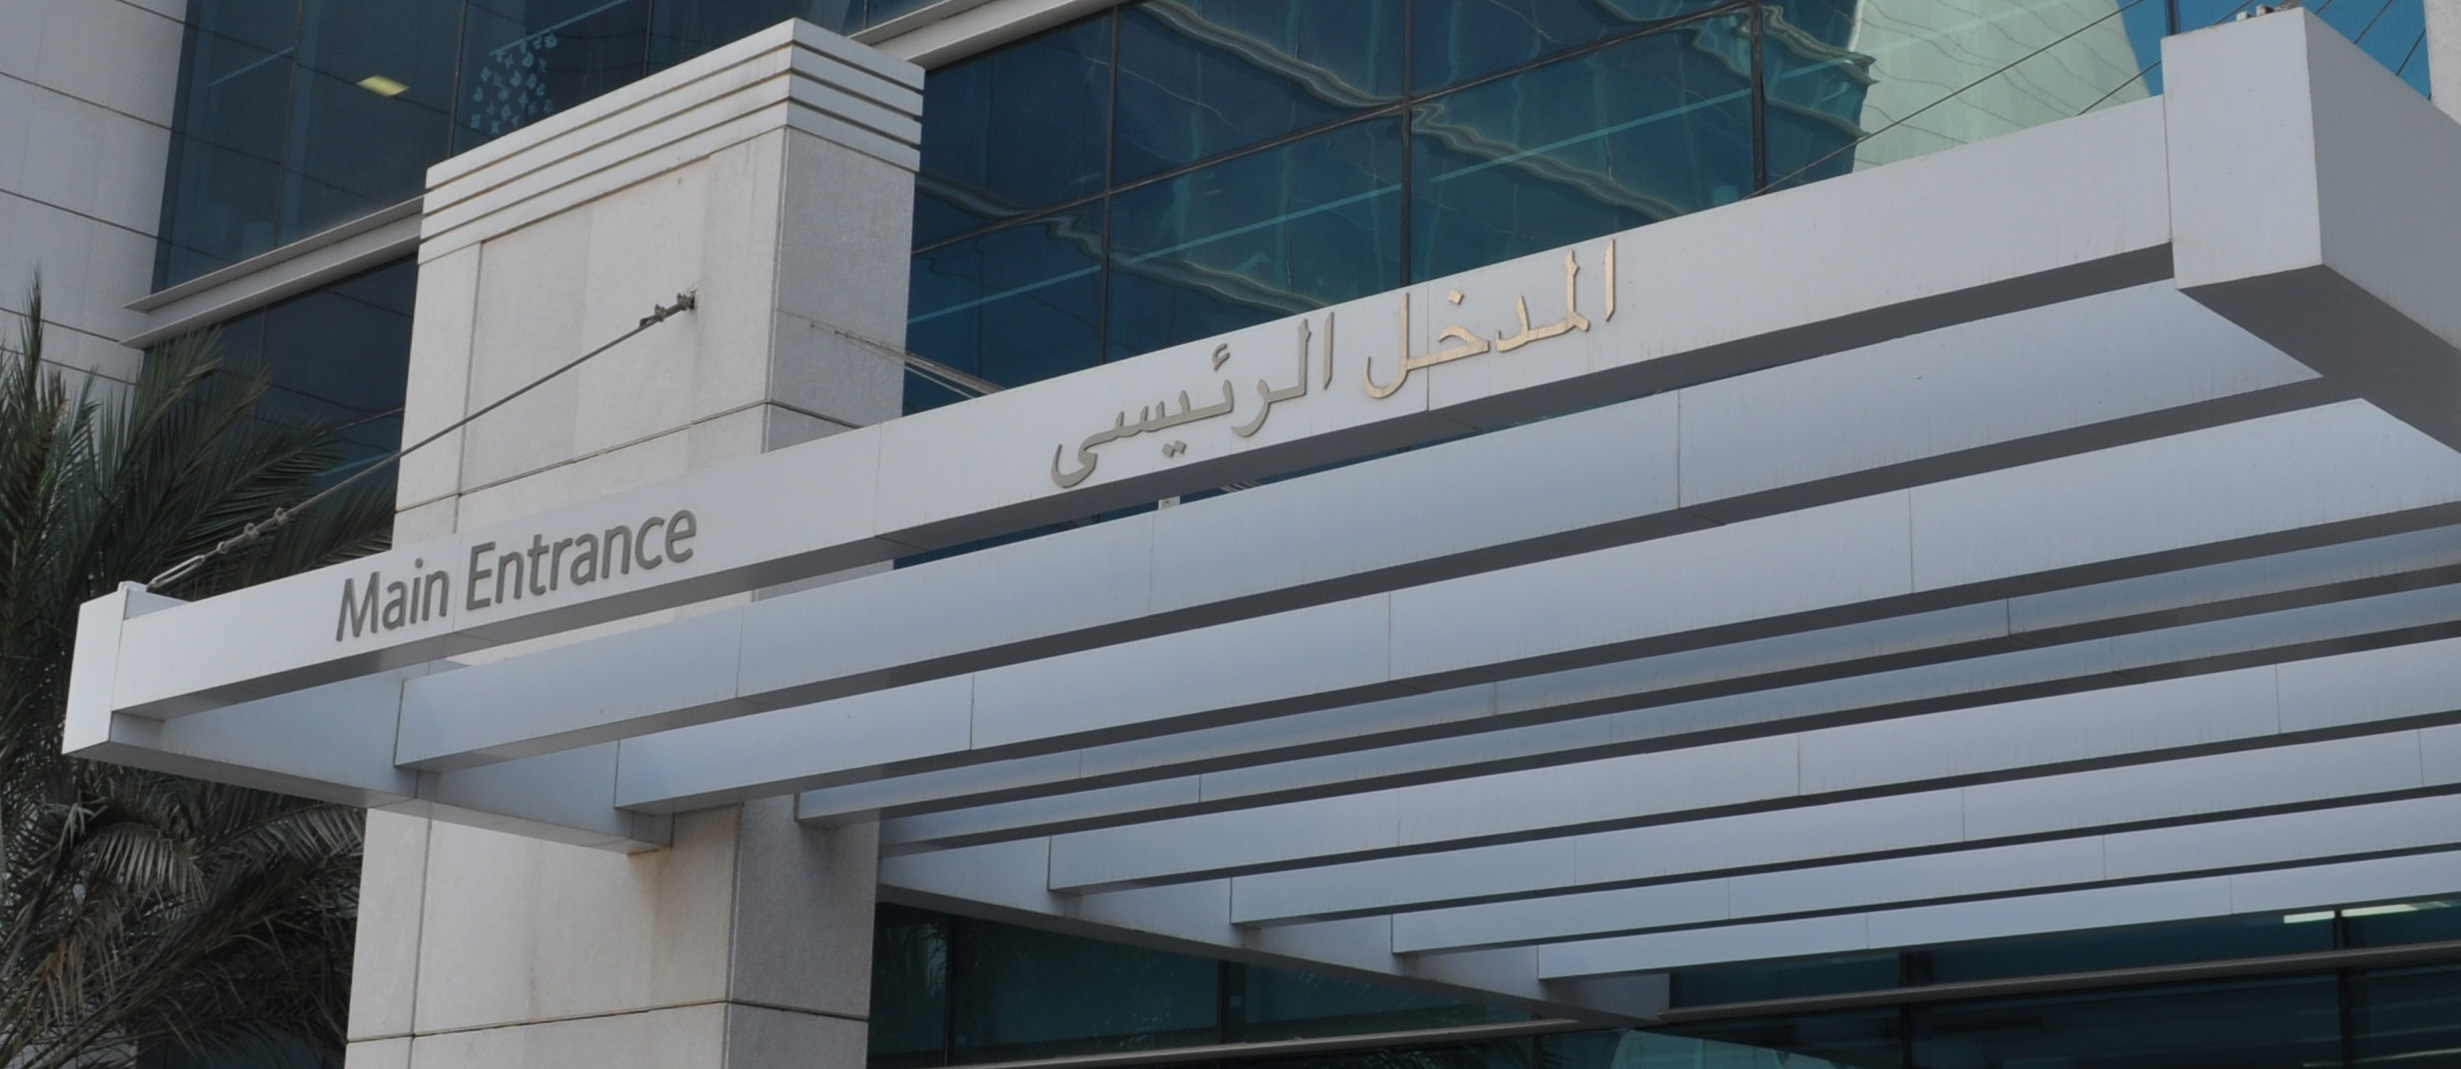 <h2>Dubai Properties - External Sign2</h2><br/>